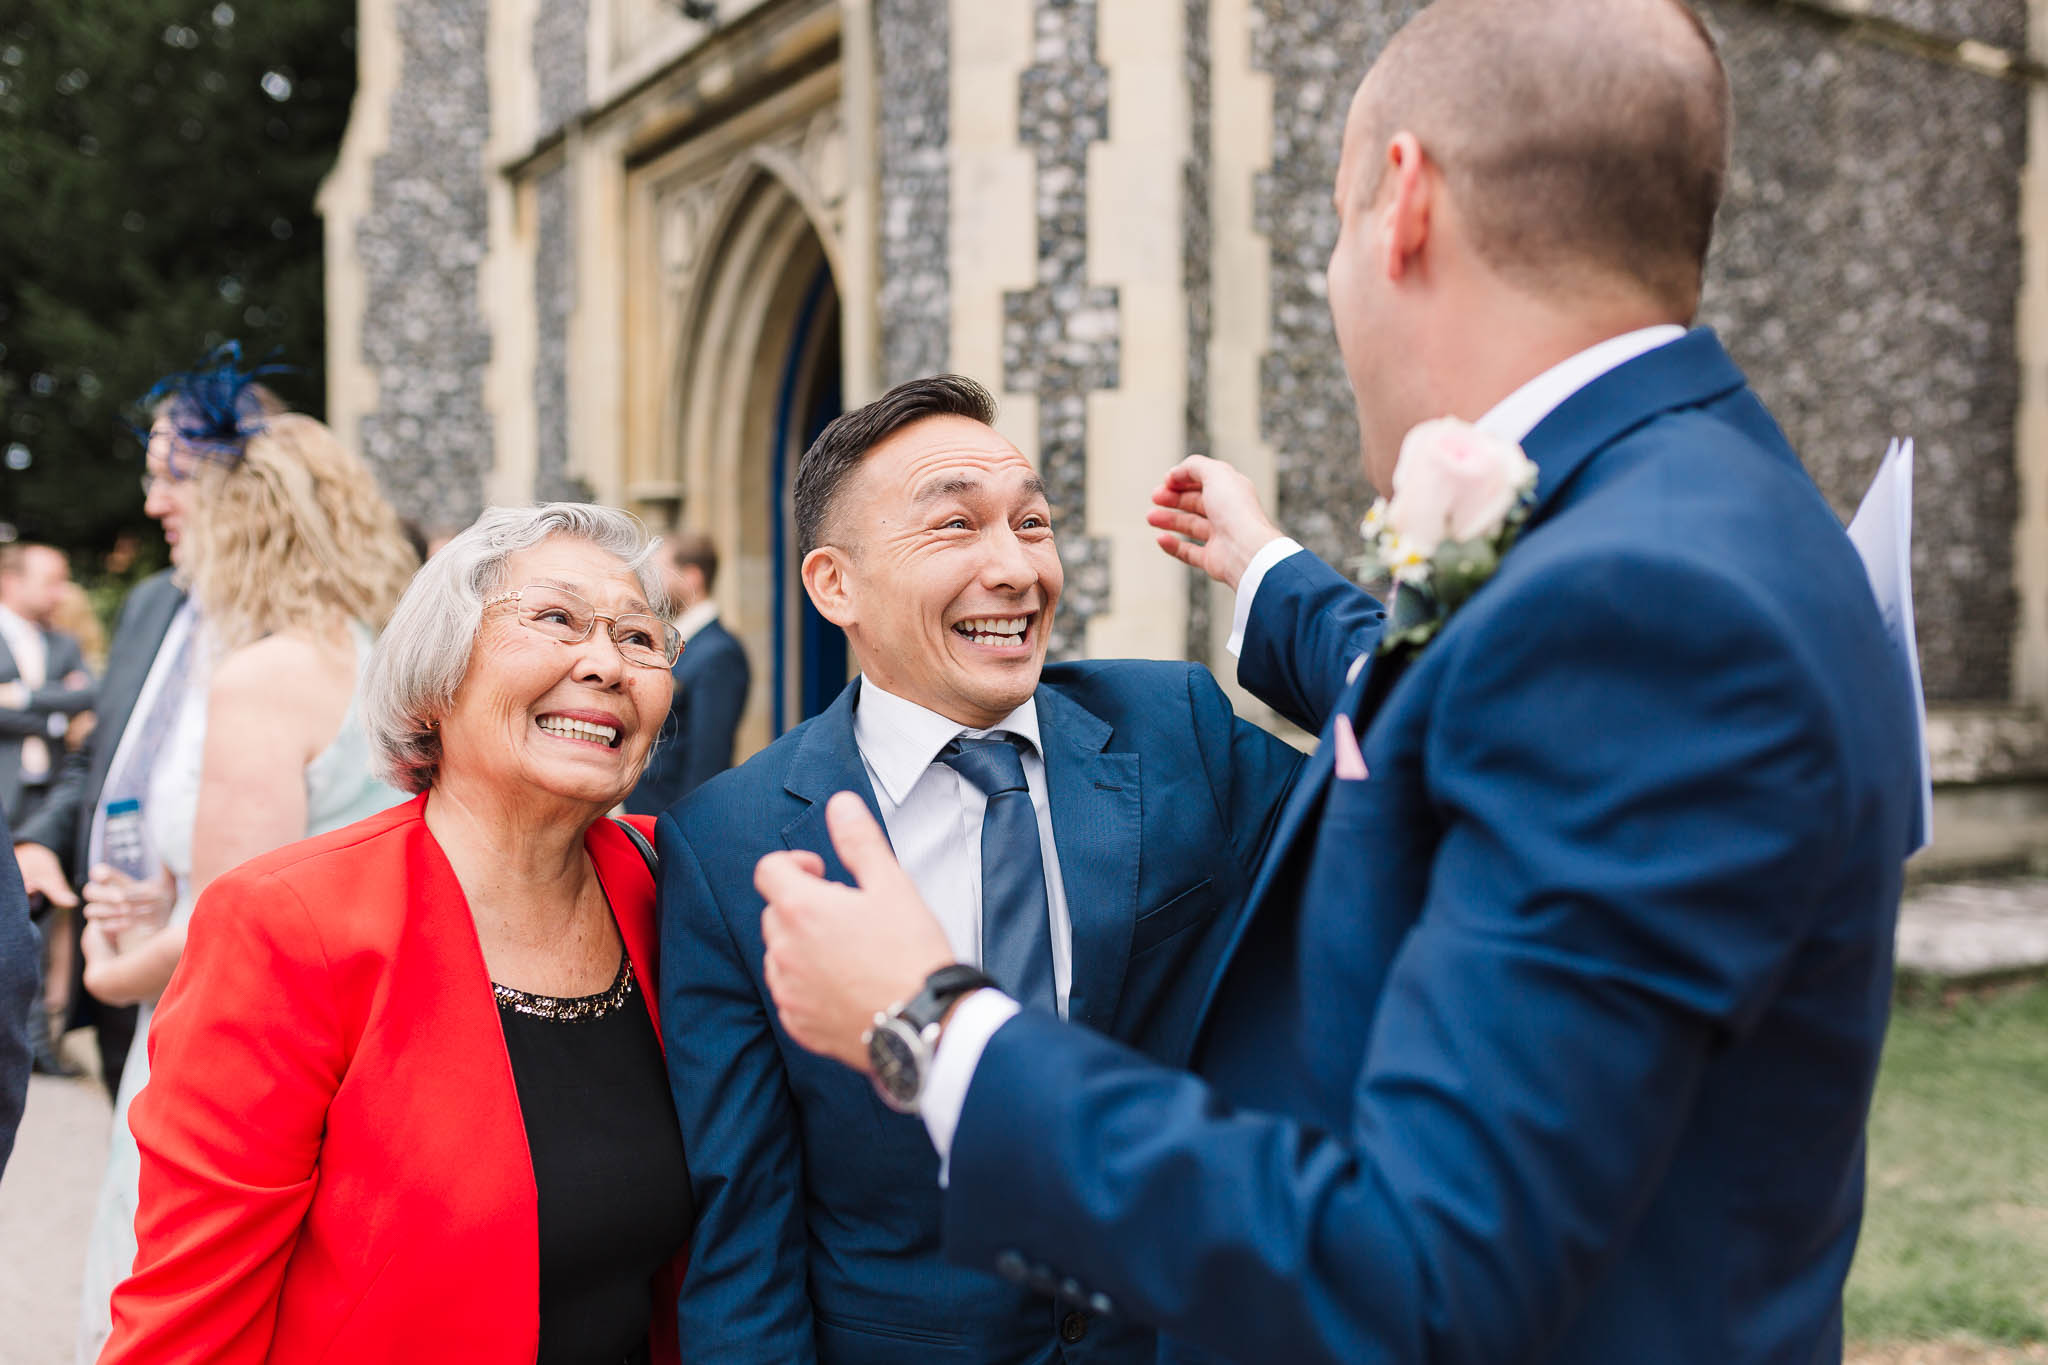 wedding guests greeting groom at church